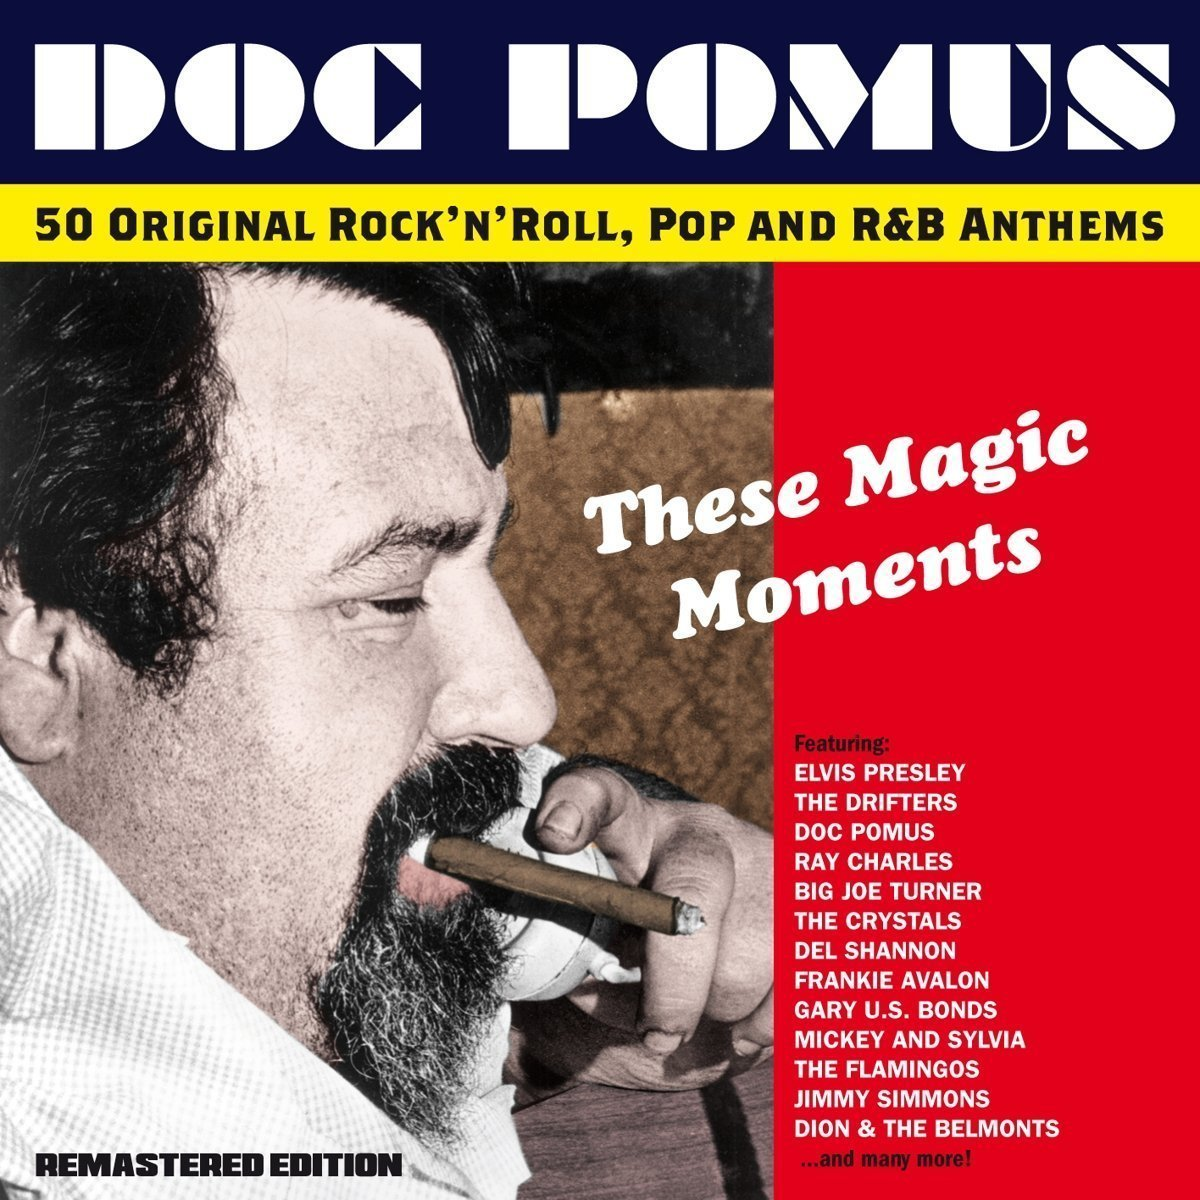 These Magic Moments: 50 Original Rock 'n' Roll, Pop and R&B Anthems - Doc Pomus